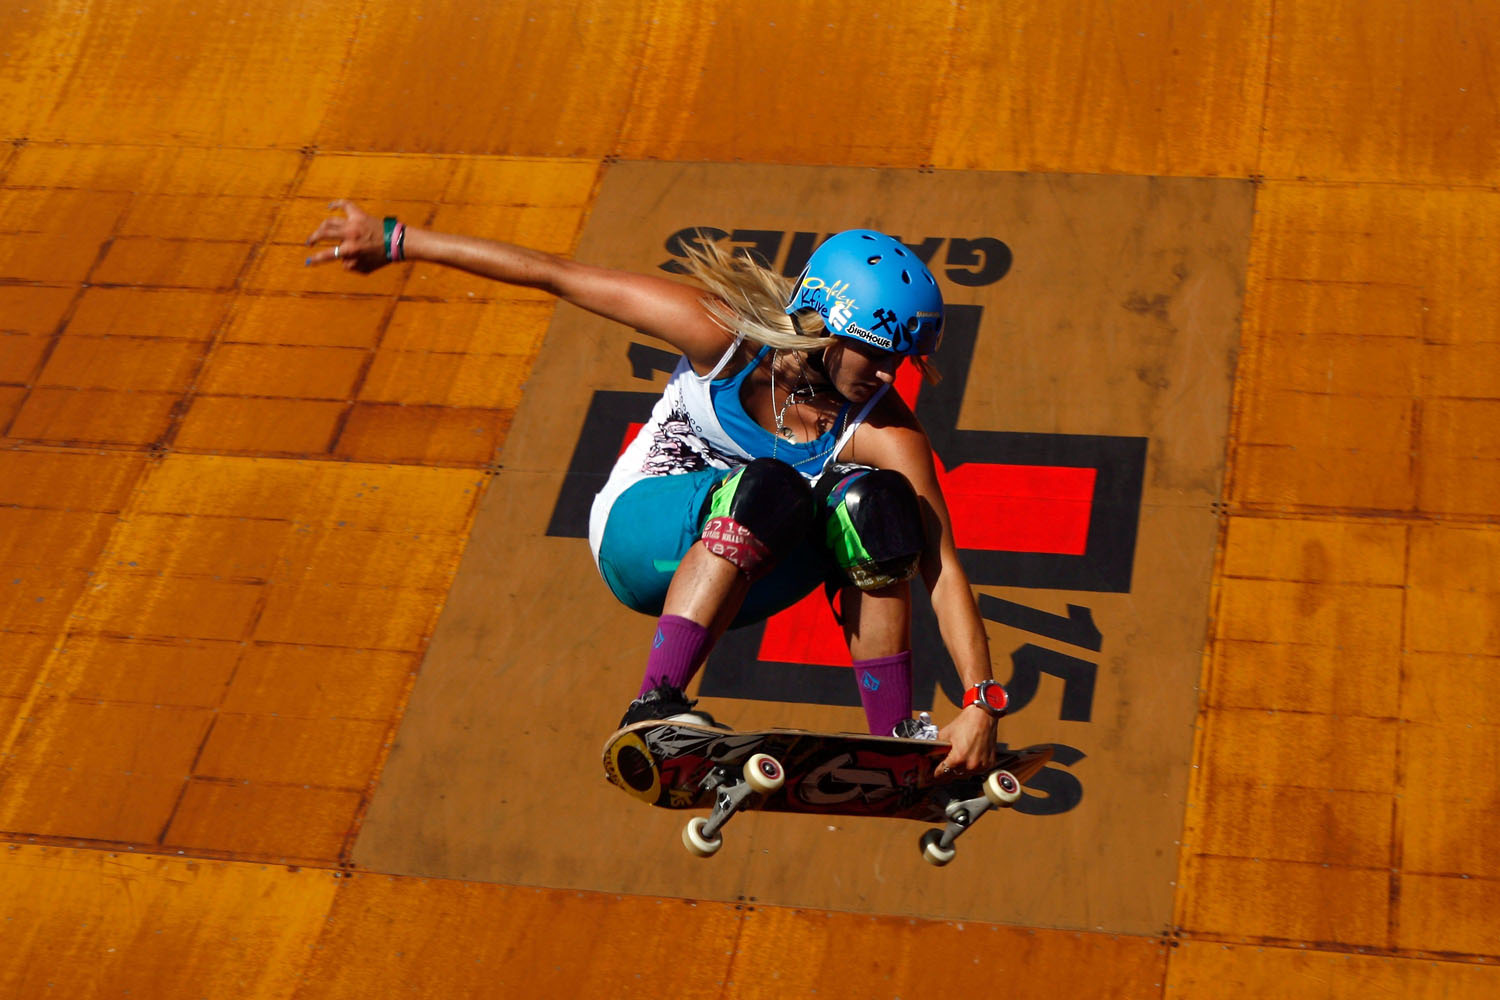 Lyn-z Adams Hawkins competes in the Women's Skateboard Vert final during X Games 15 at the Home Depot Center on July 30, 2009 in Carson, California.